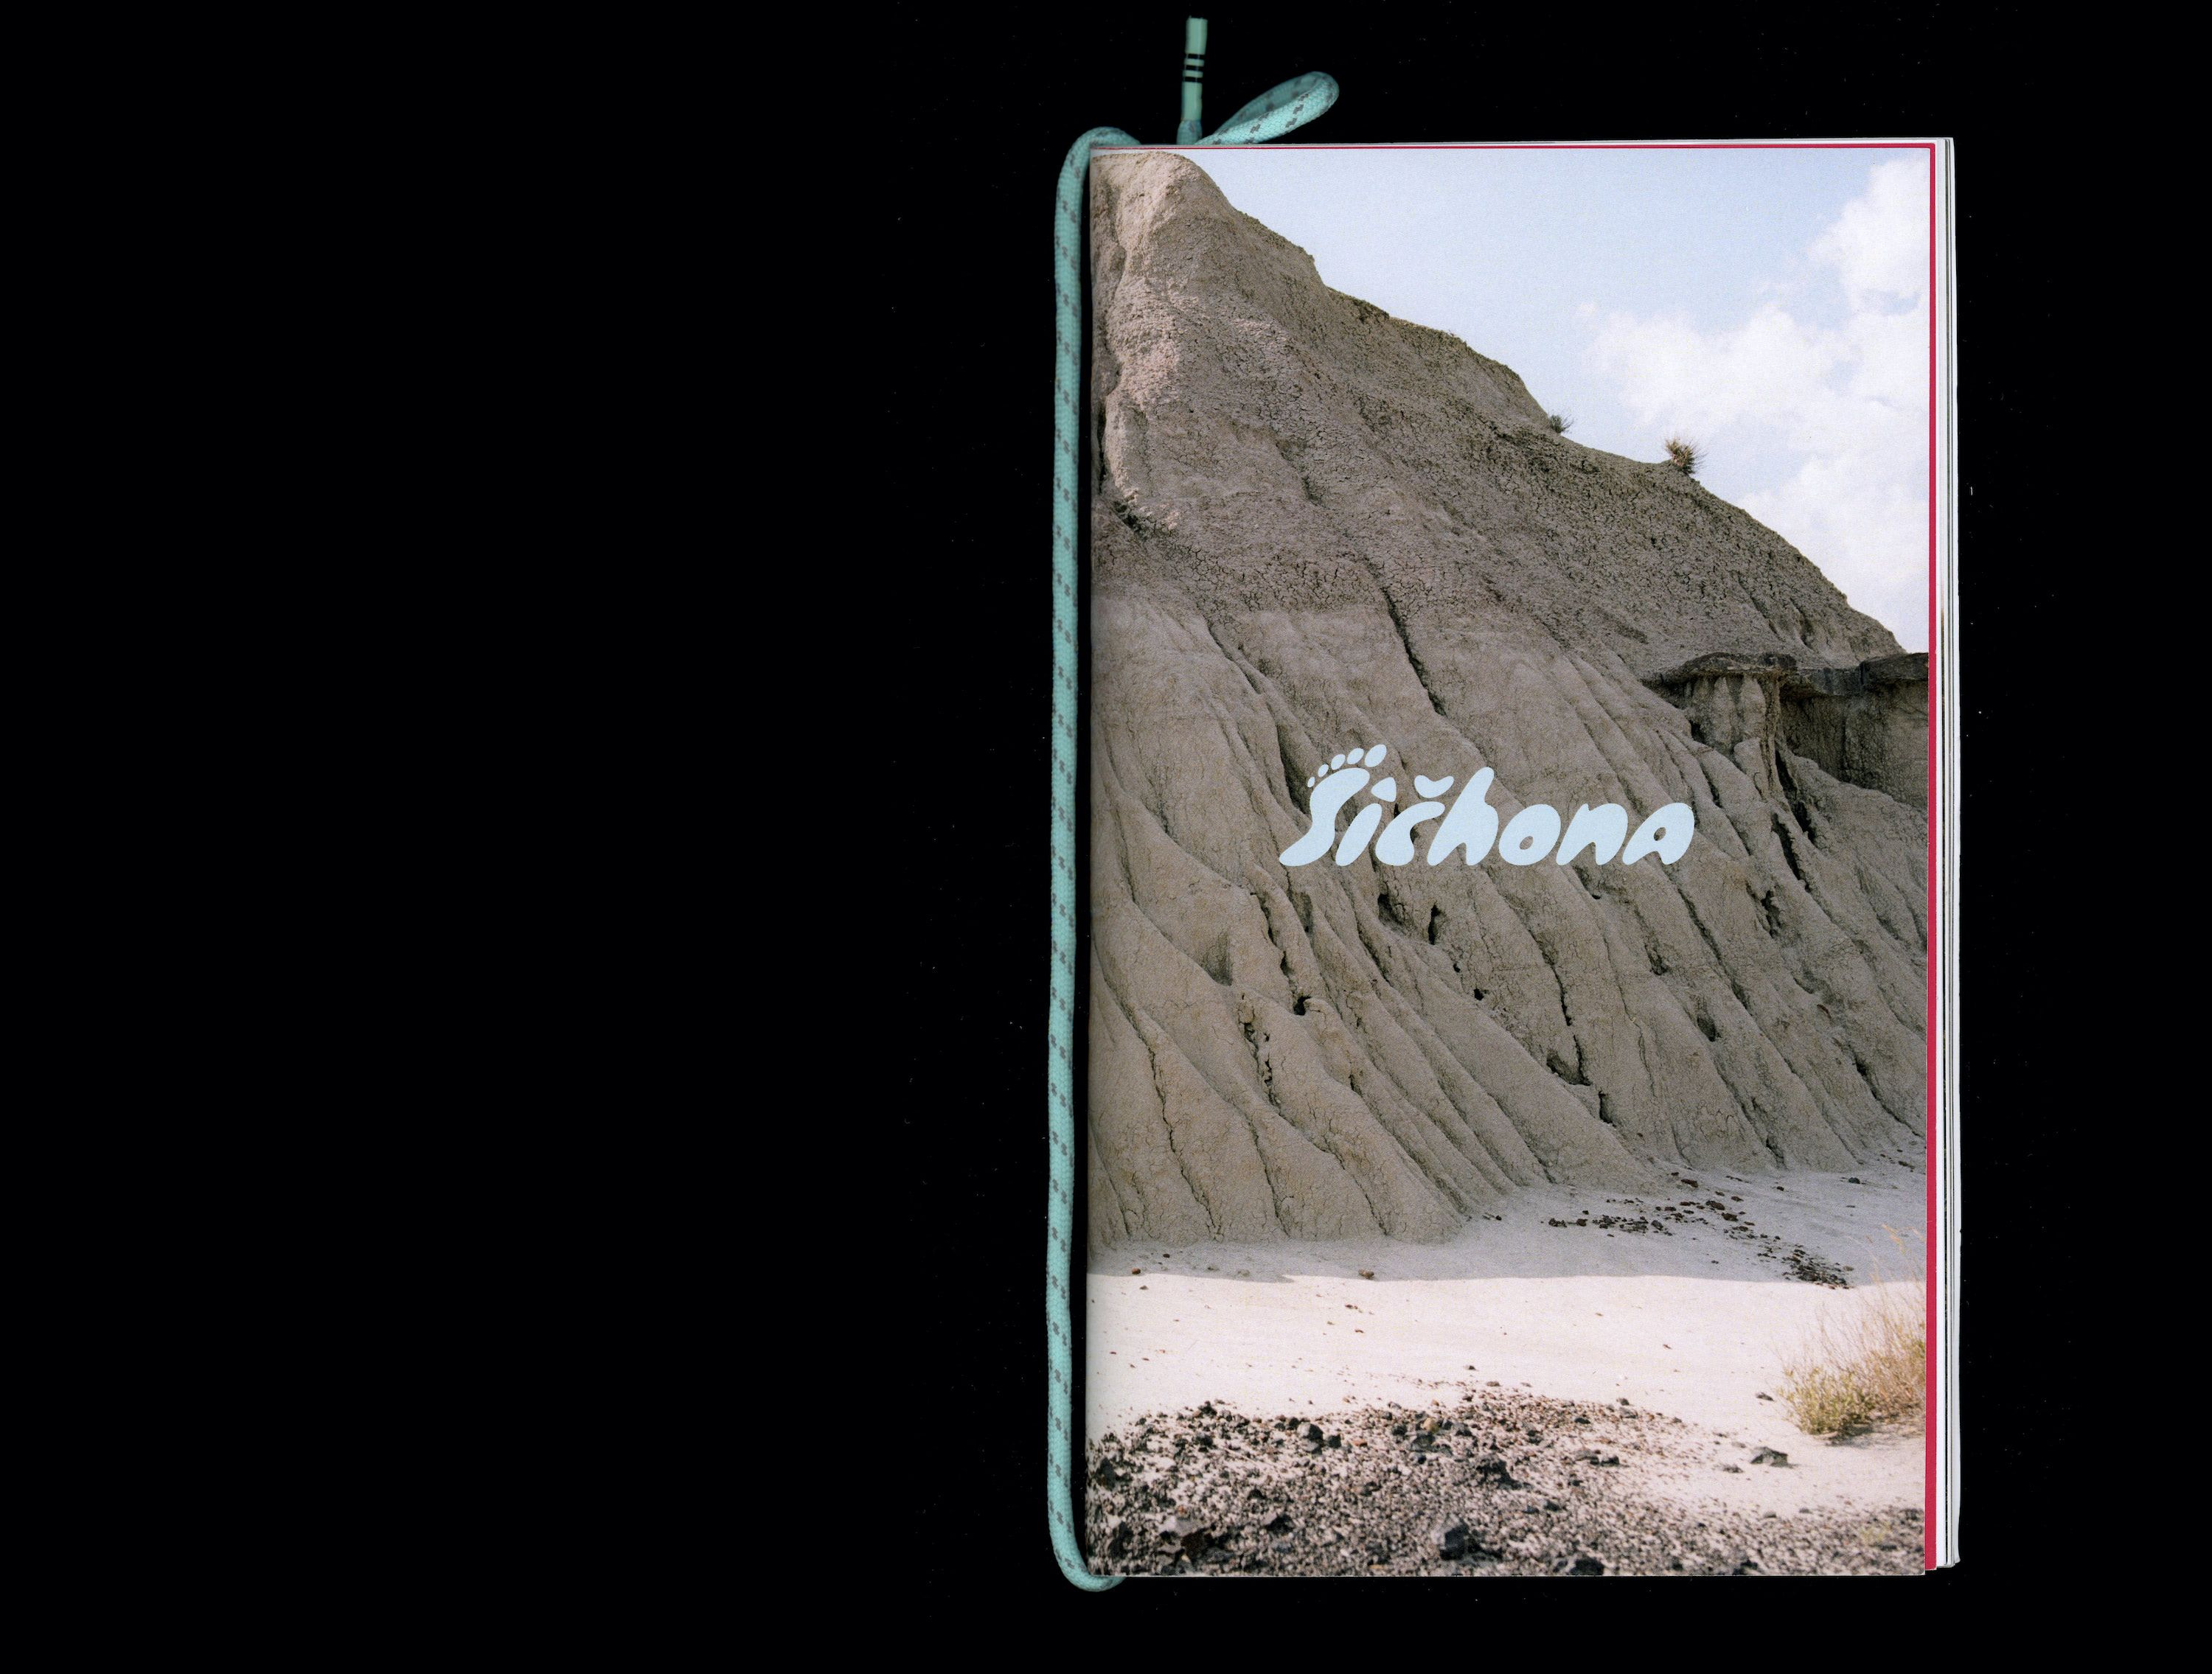 Book cover with photo of mountainous rock in sandy desert